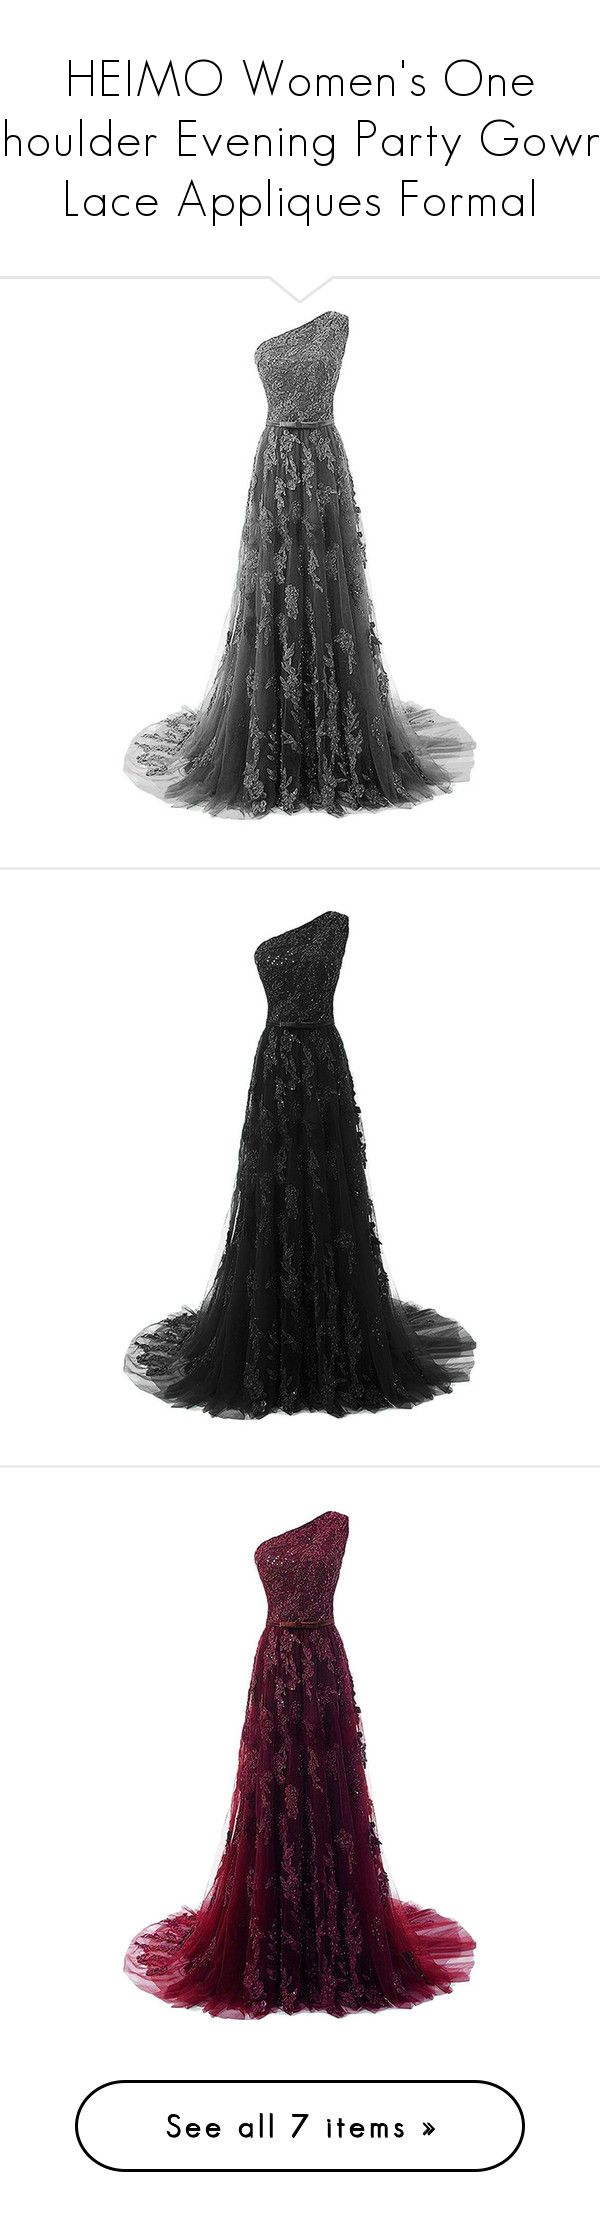 """""""HEIMO Women's One Shoulder Evening Party Gowns Lace Appliques Formal"""" by qwertyuiop-sparta ❤ liked on Polyvore featuring dresses, long white dress, white party dresses, white formal dresses, white lace dress, white prom dresses, cocktail dresses, cocktail party dress, holiday party dresses and formal cocktail dresses"""